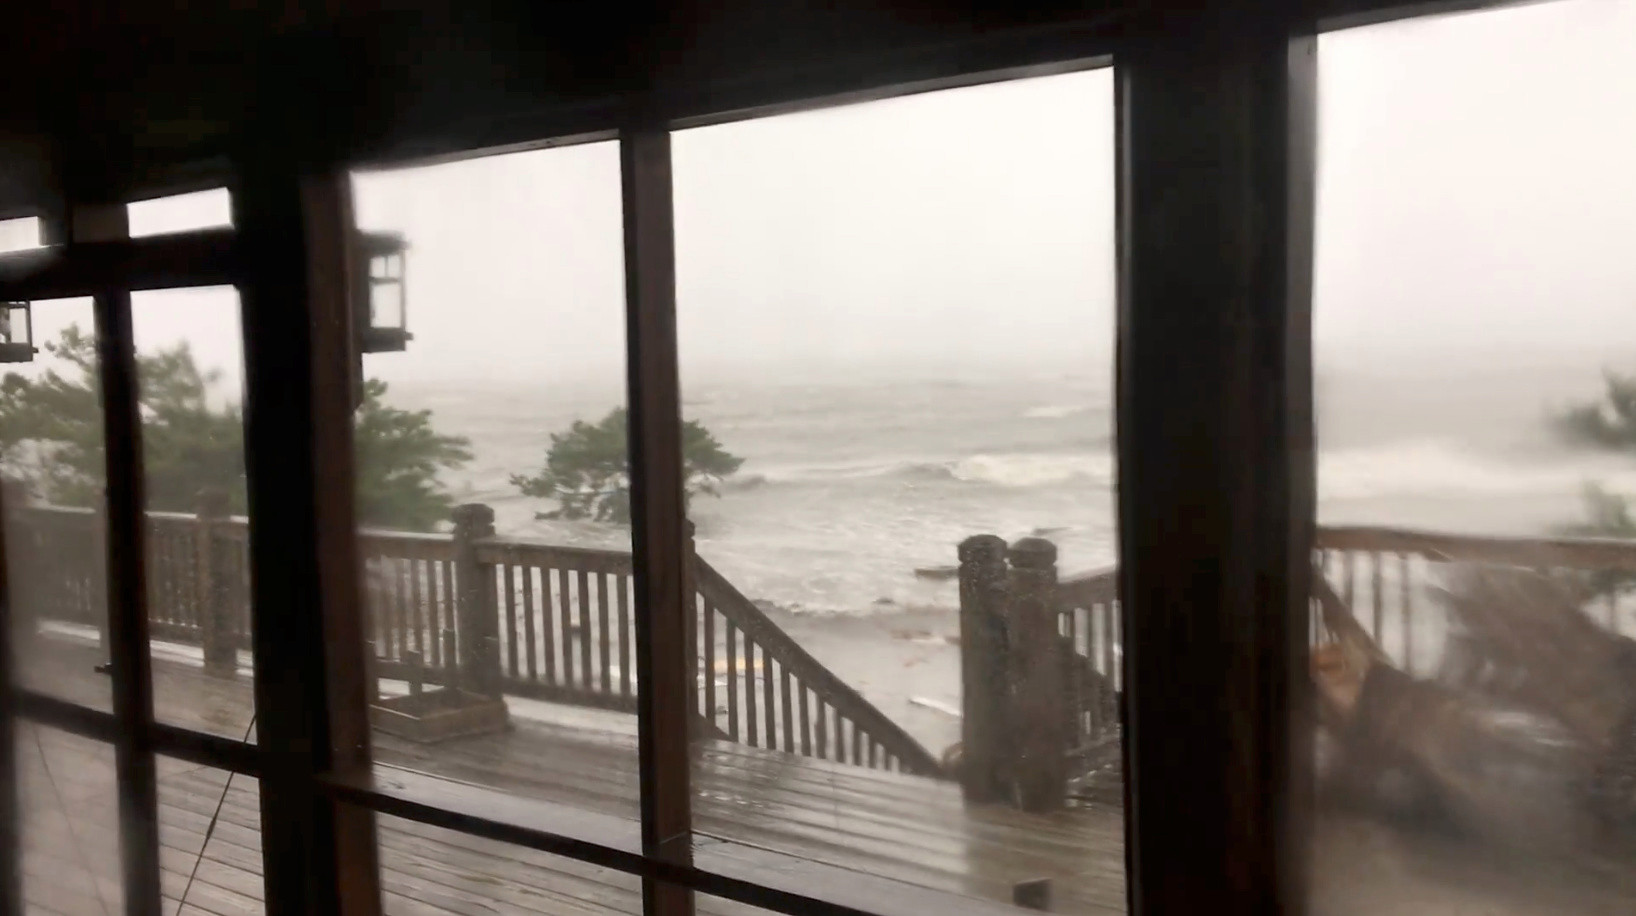 Local residents described the flooding as 'biblical' after the storm hit the island yesterday